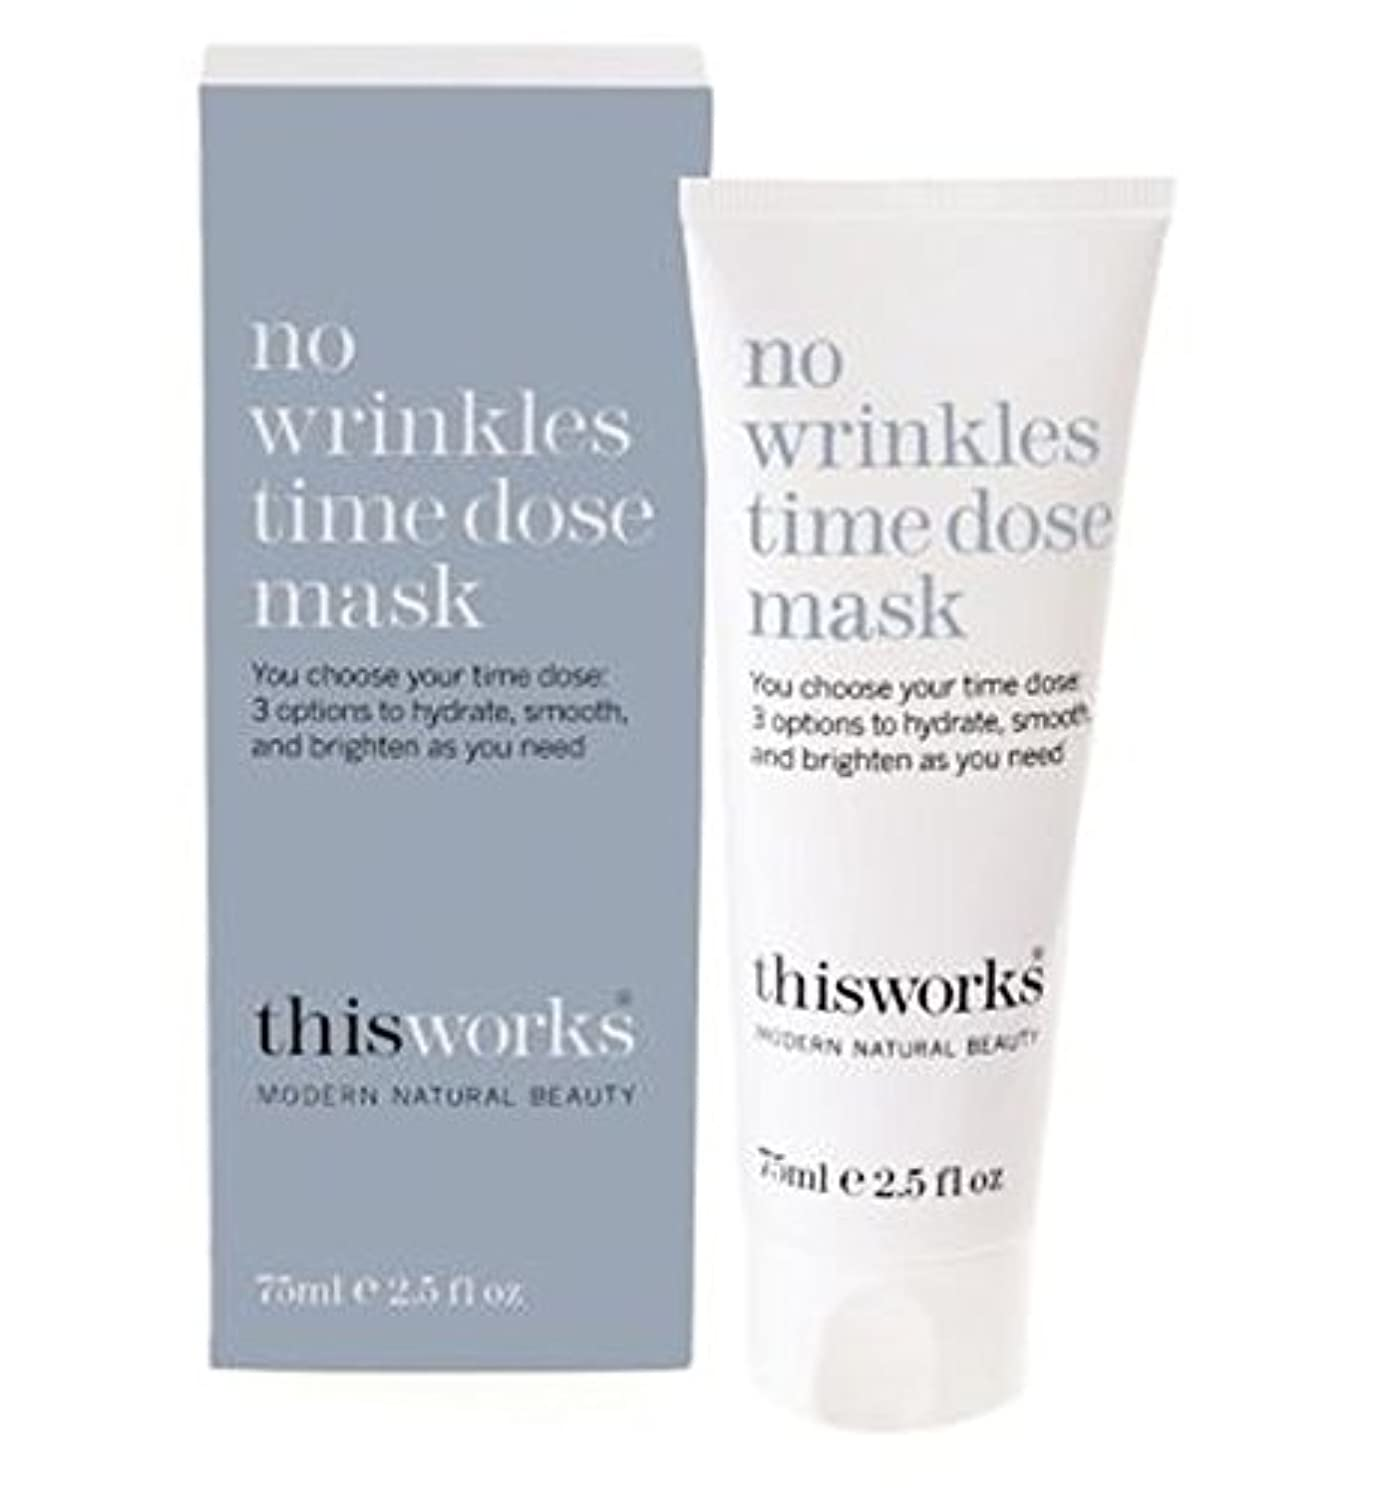 This Works No Wrinkles Time Dose Mask 75ml - これにはしわ時間線量マスクの75ミリリットルの作品はありません (This Works) [並行輸入品]